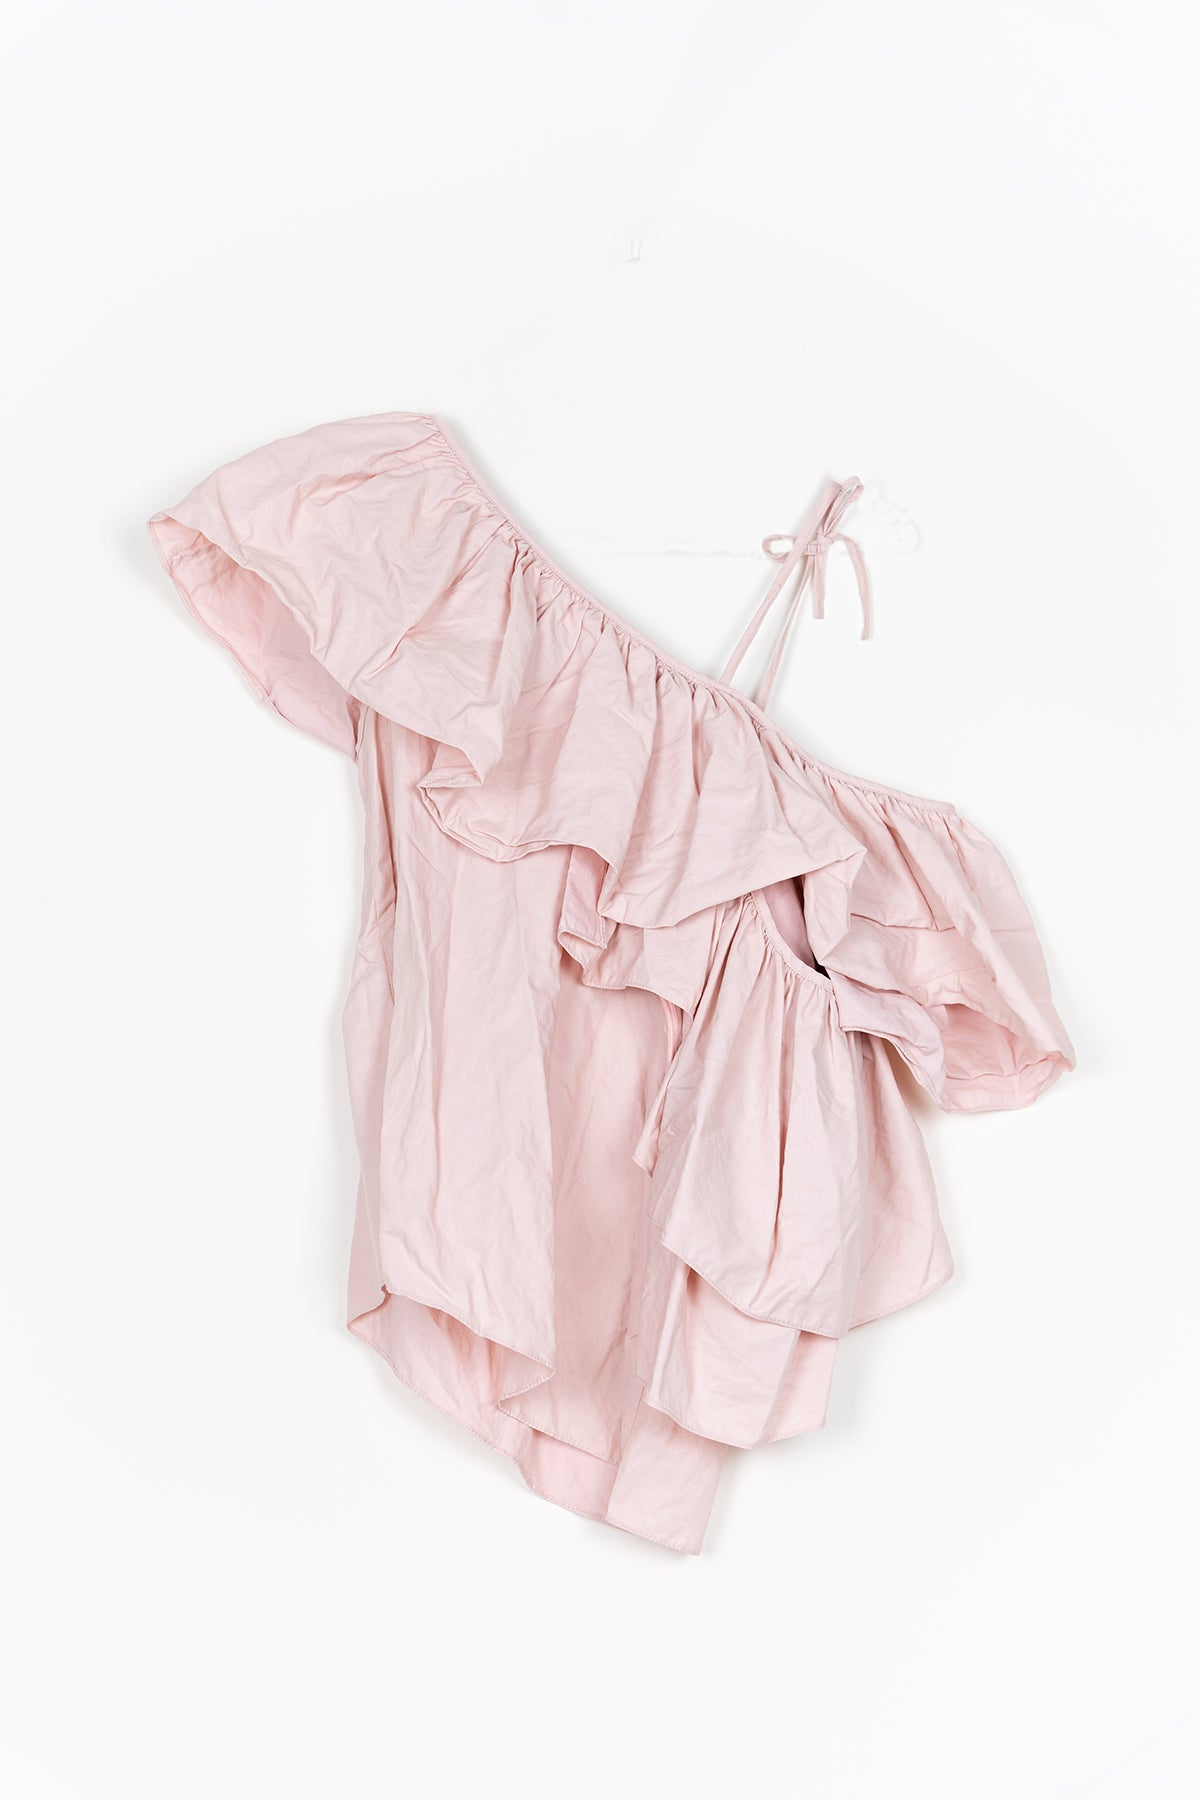 marques almeida PINK ONE SHOULDER RUFFLE TOP